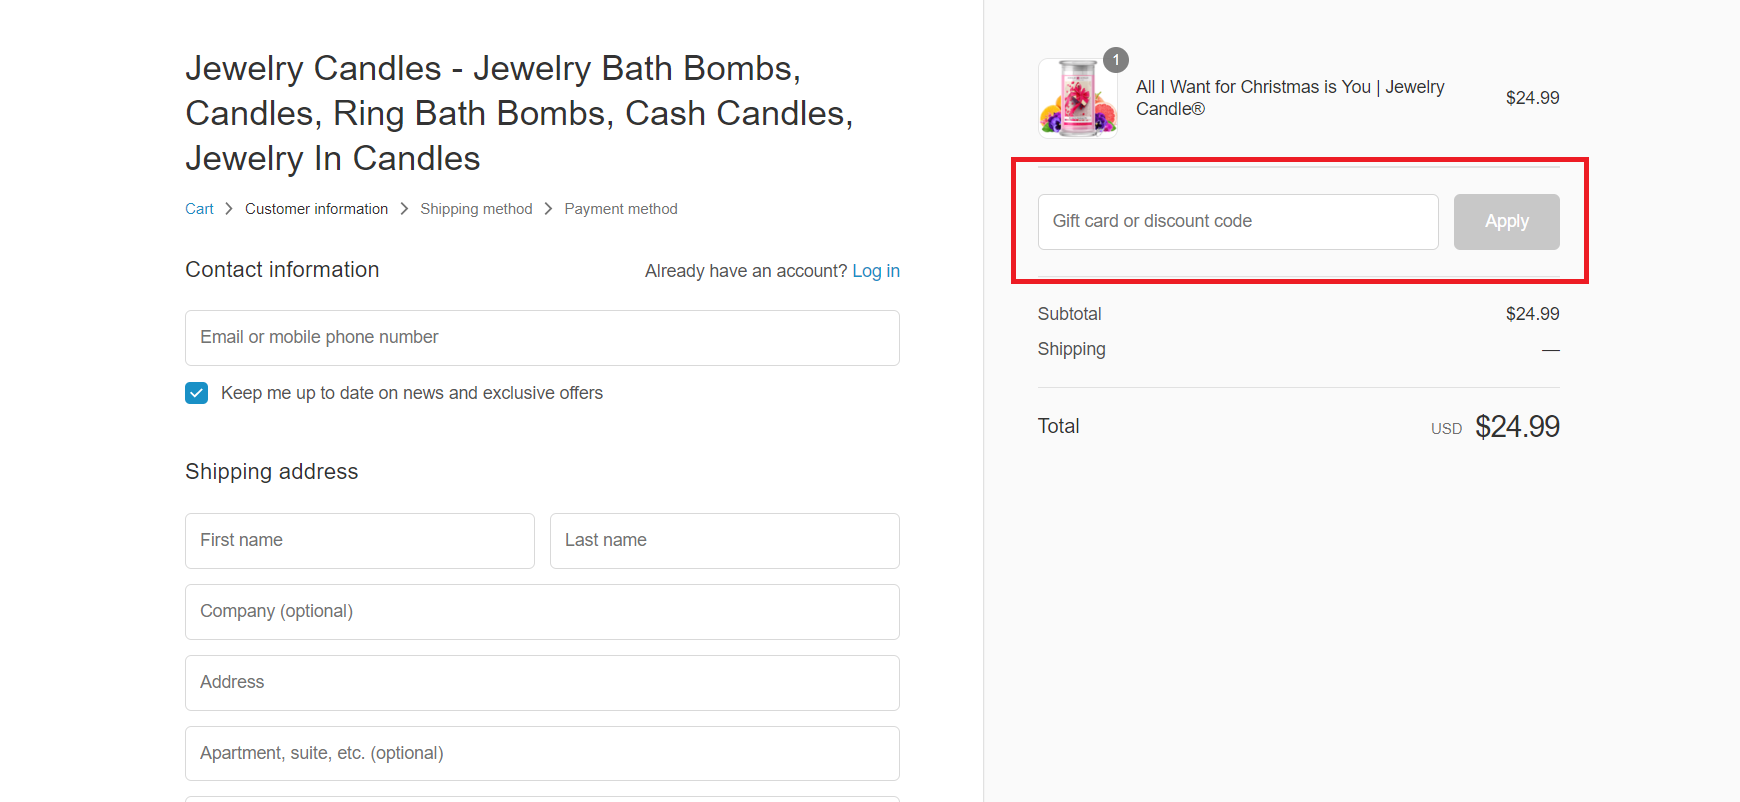 Jewelry Candles Coupons